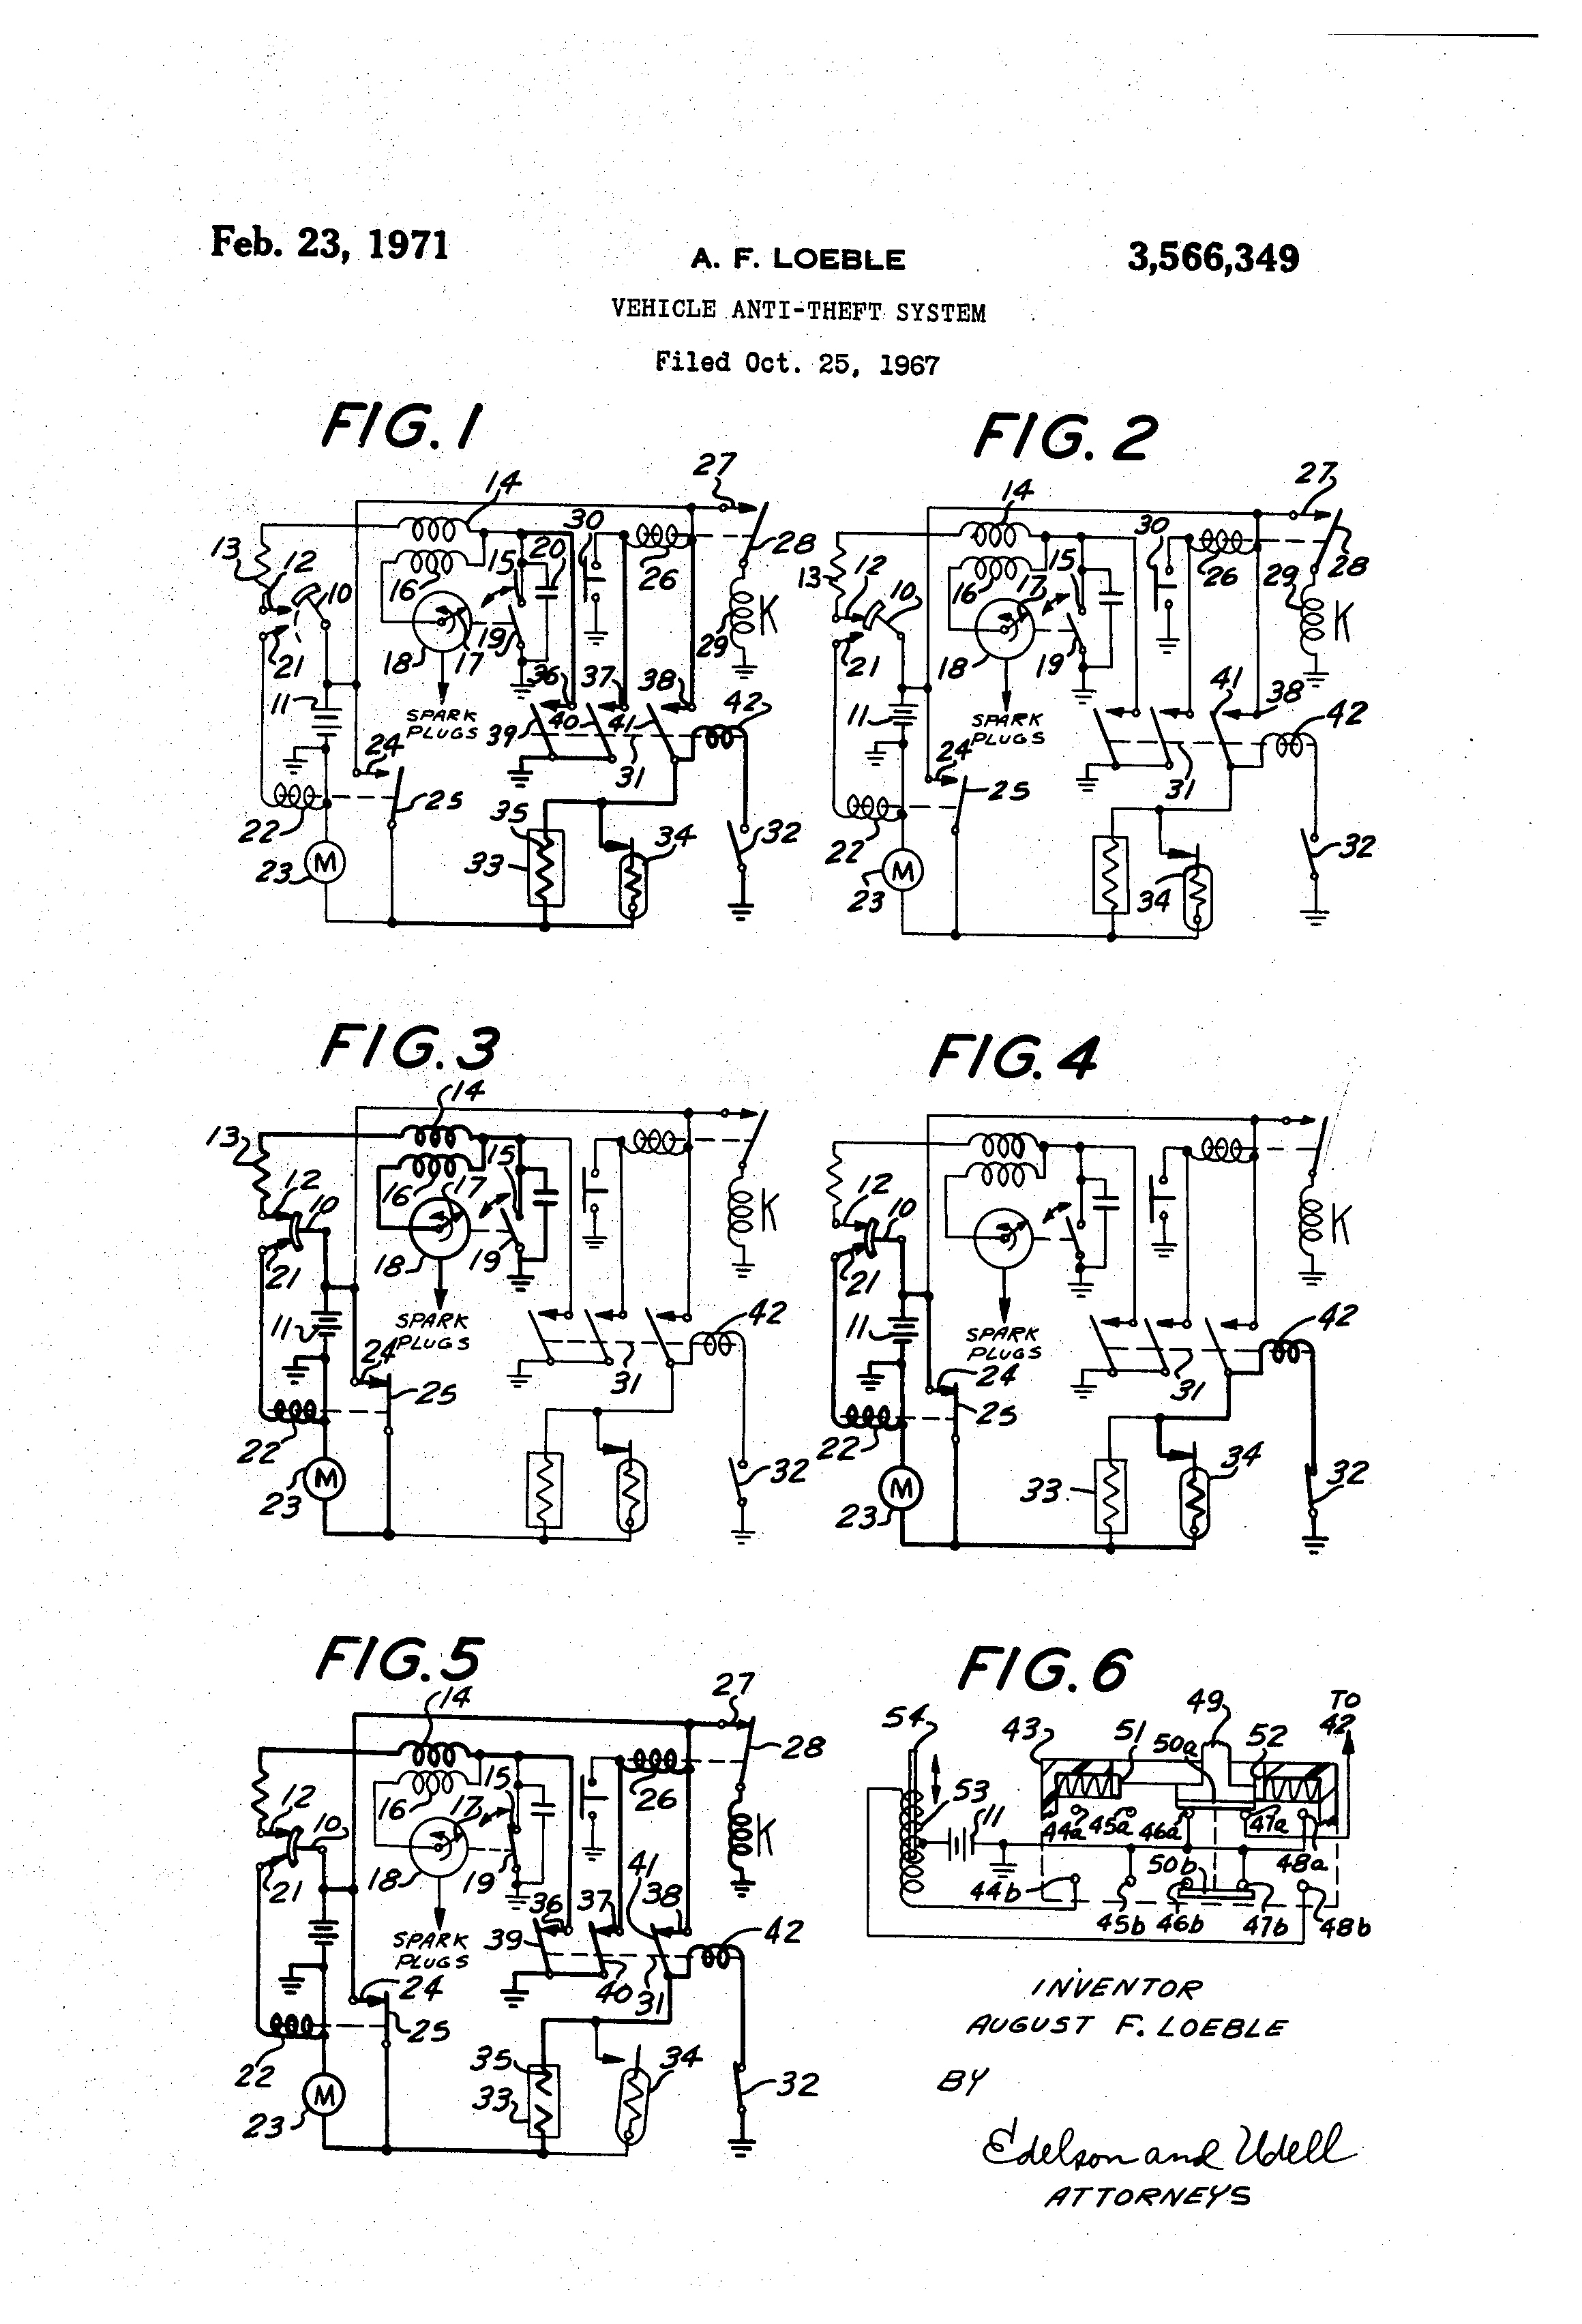 Circuit Latch In One Of Two States Either Motor Energized Or Motor De